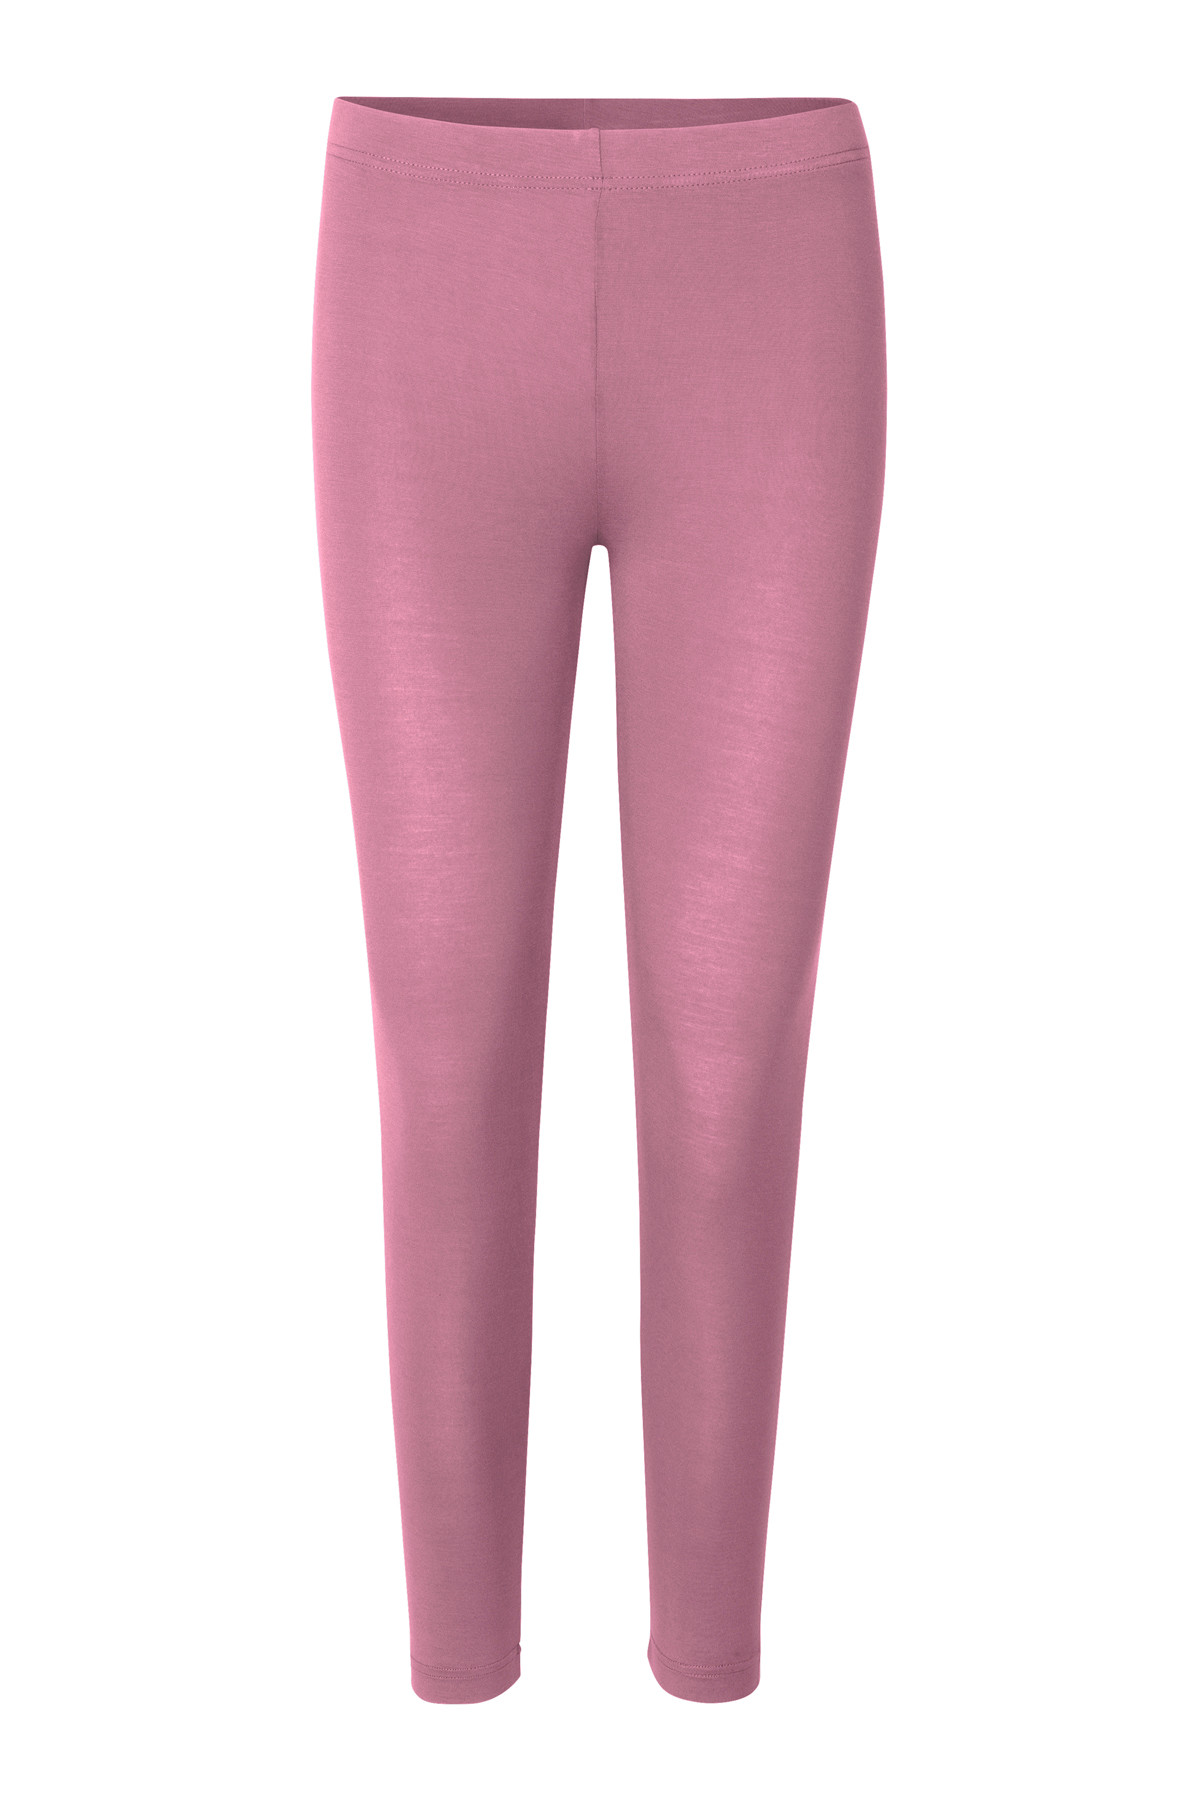 NOA NOA LEGGINGS 1-0469-16 00149 (Rose, XXS)